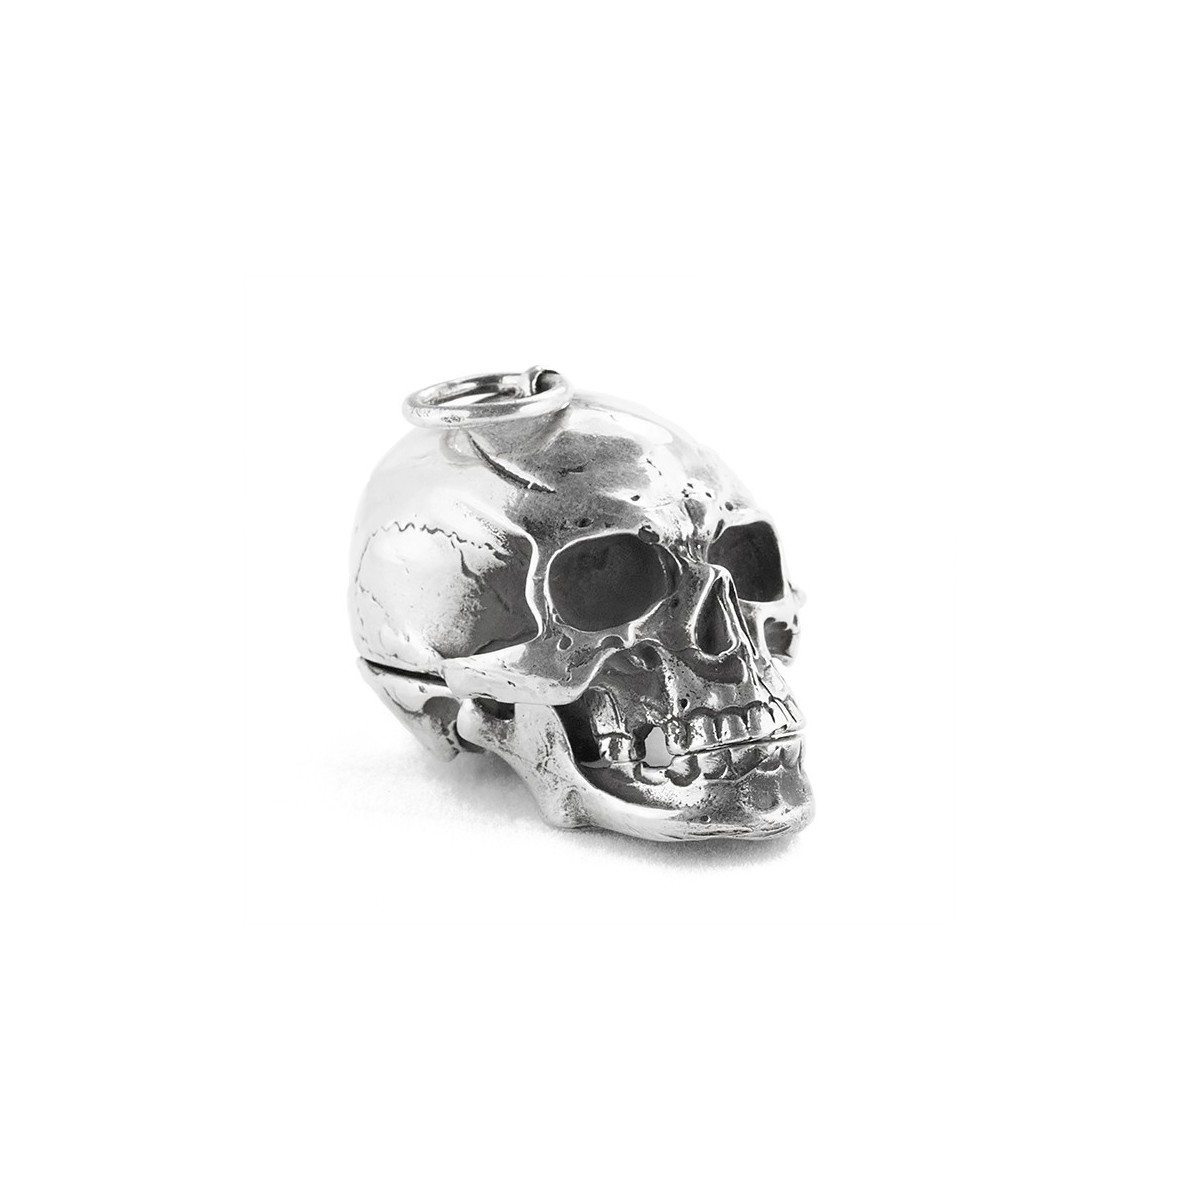 Skull pendant hoffners skull pendant skull pendant mozeypictures Images